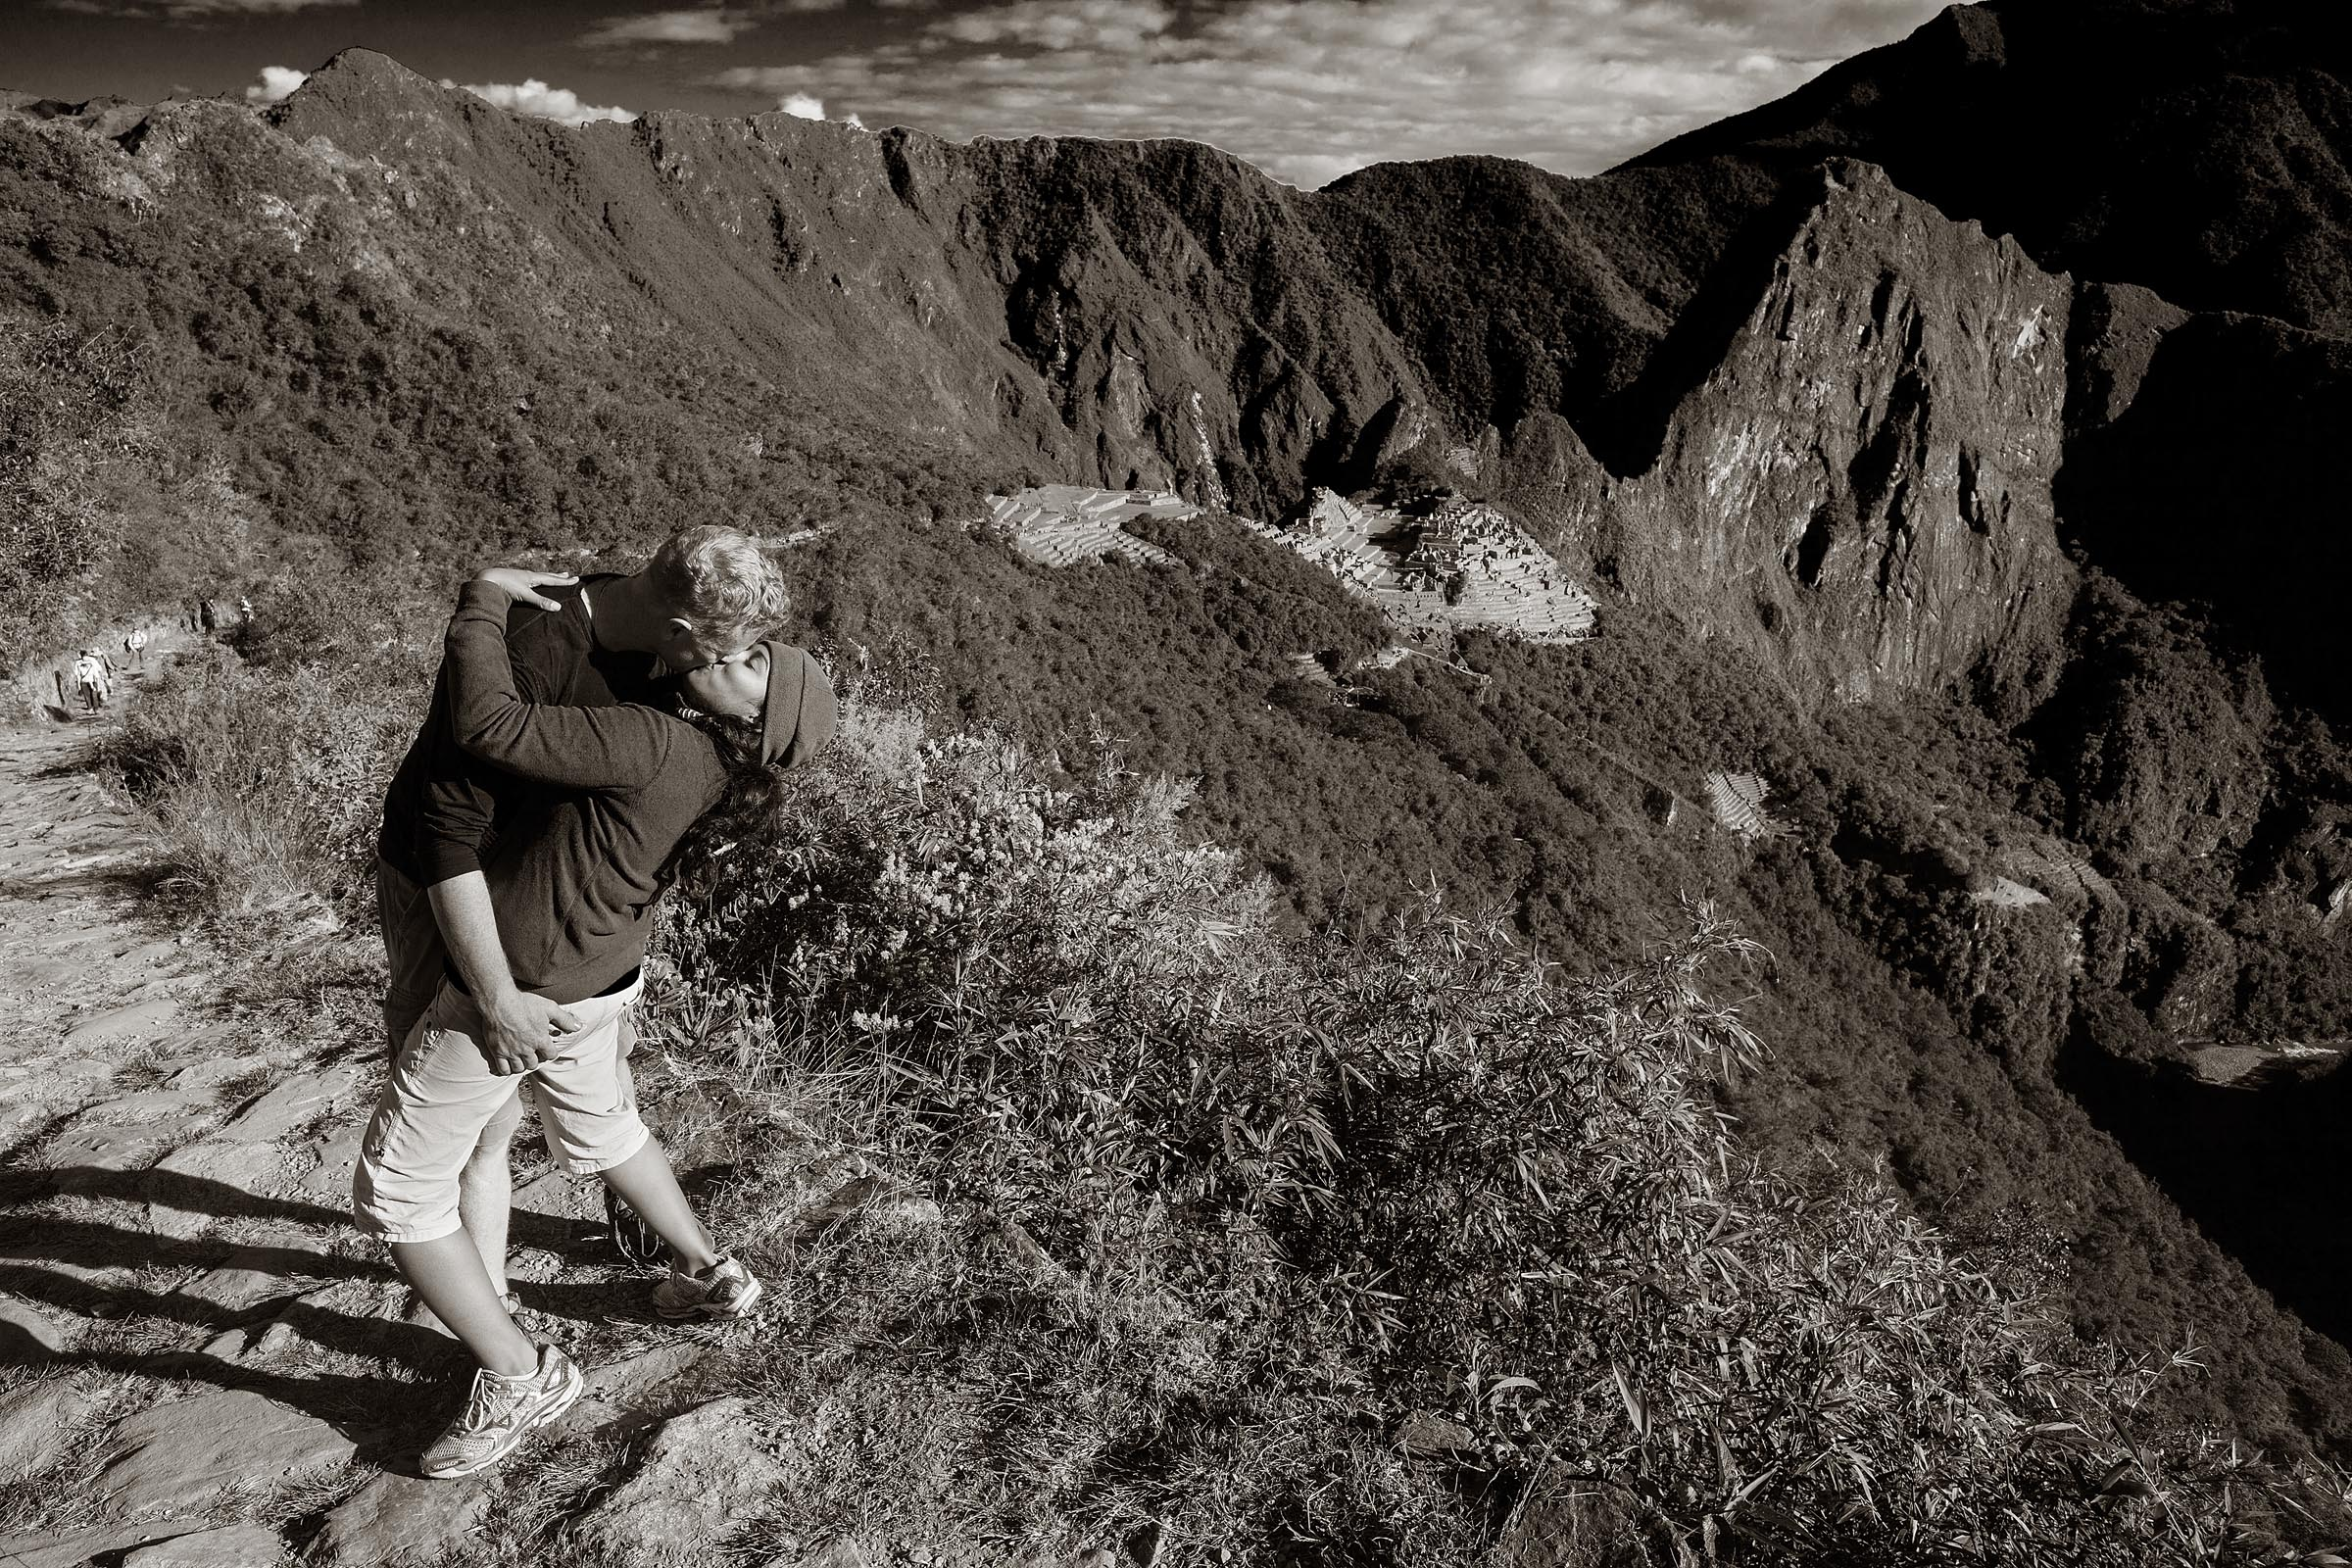 A young couple embrace in a kiss celebrating their arrival to Machu Picchu.